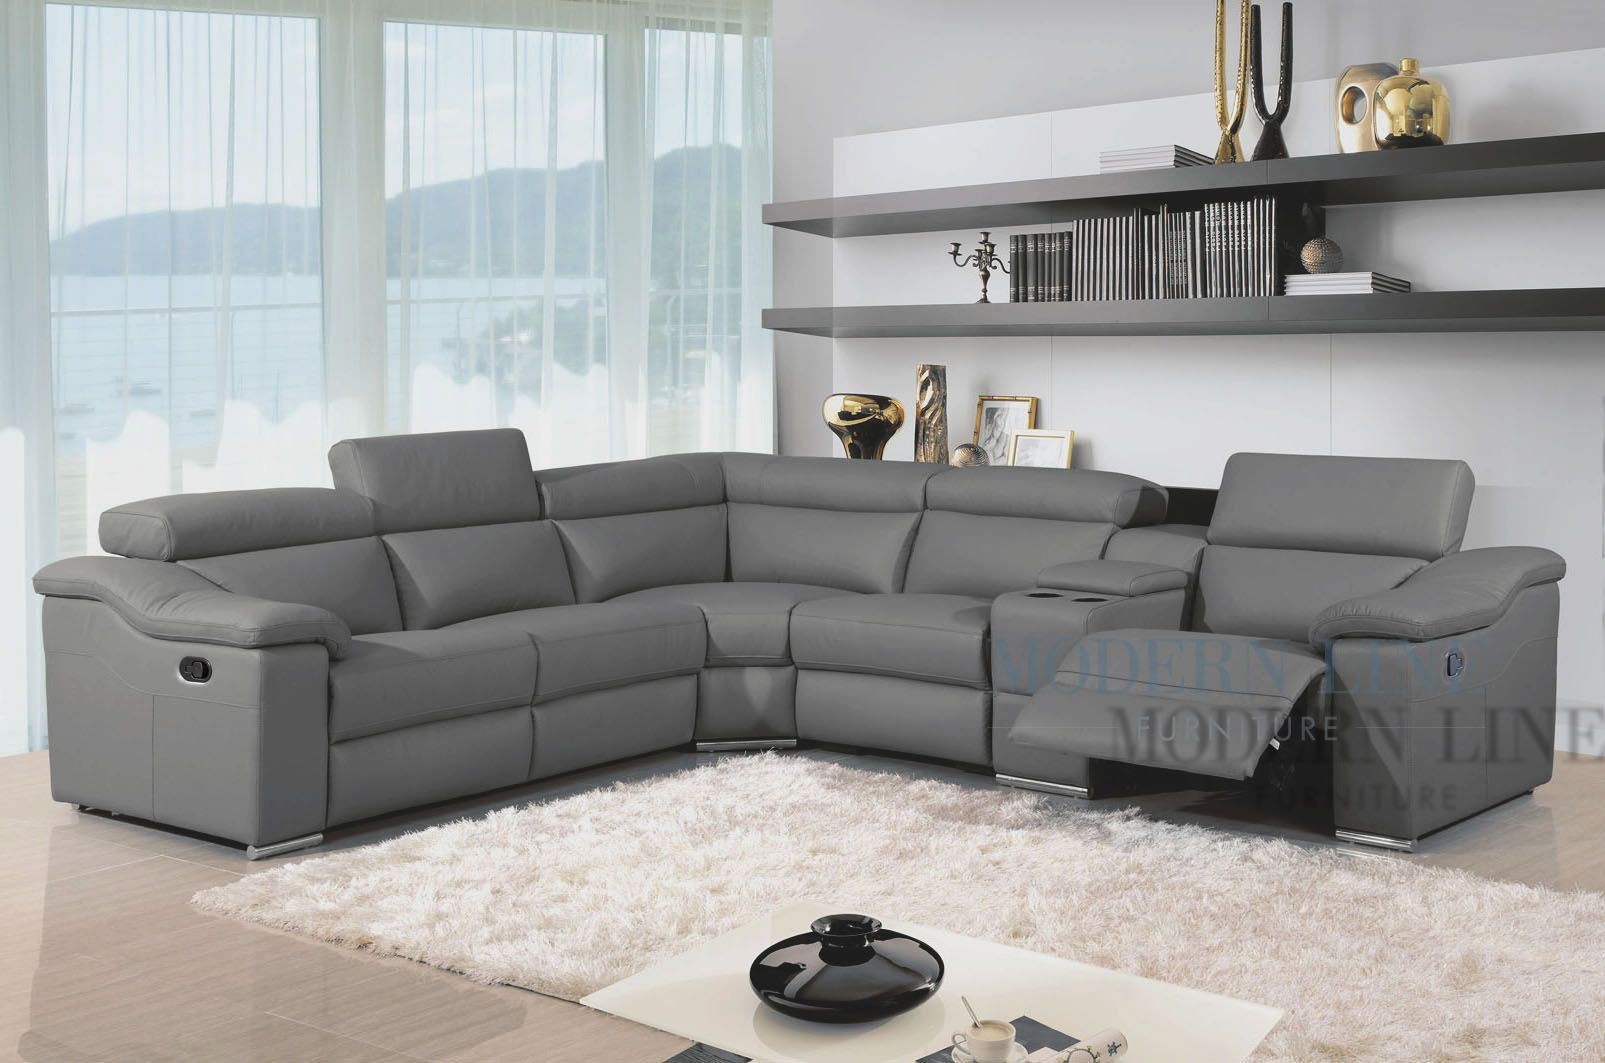 awesome Great Charcoal Grey Sectional Sofa 29 About Remodel Home Design Ideas with Charcoal Grey Sectional : recliner sectional couches - islam-shia.org